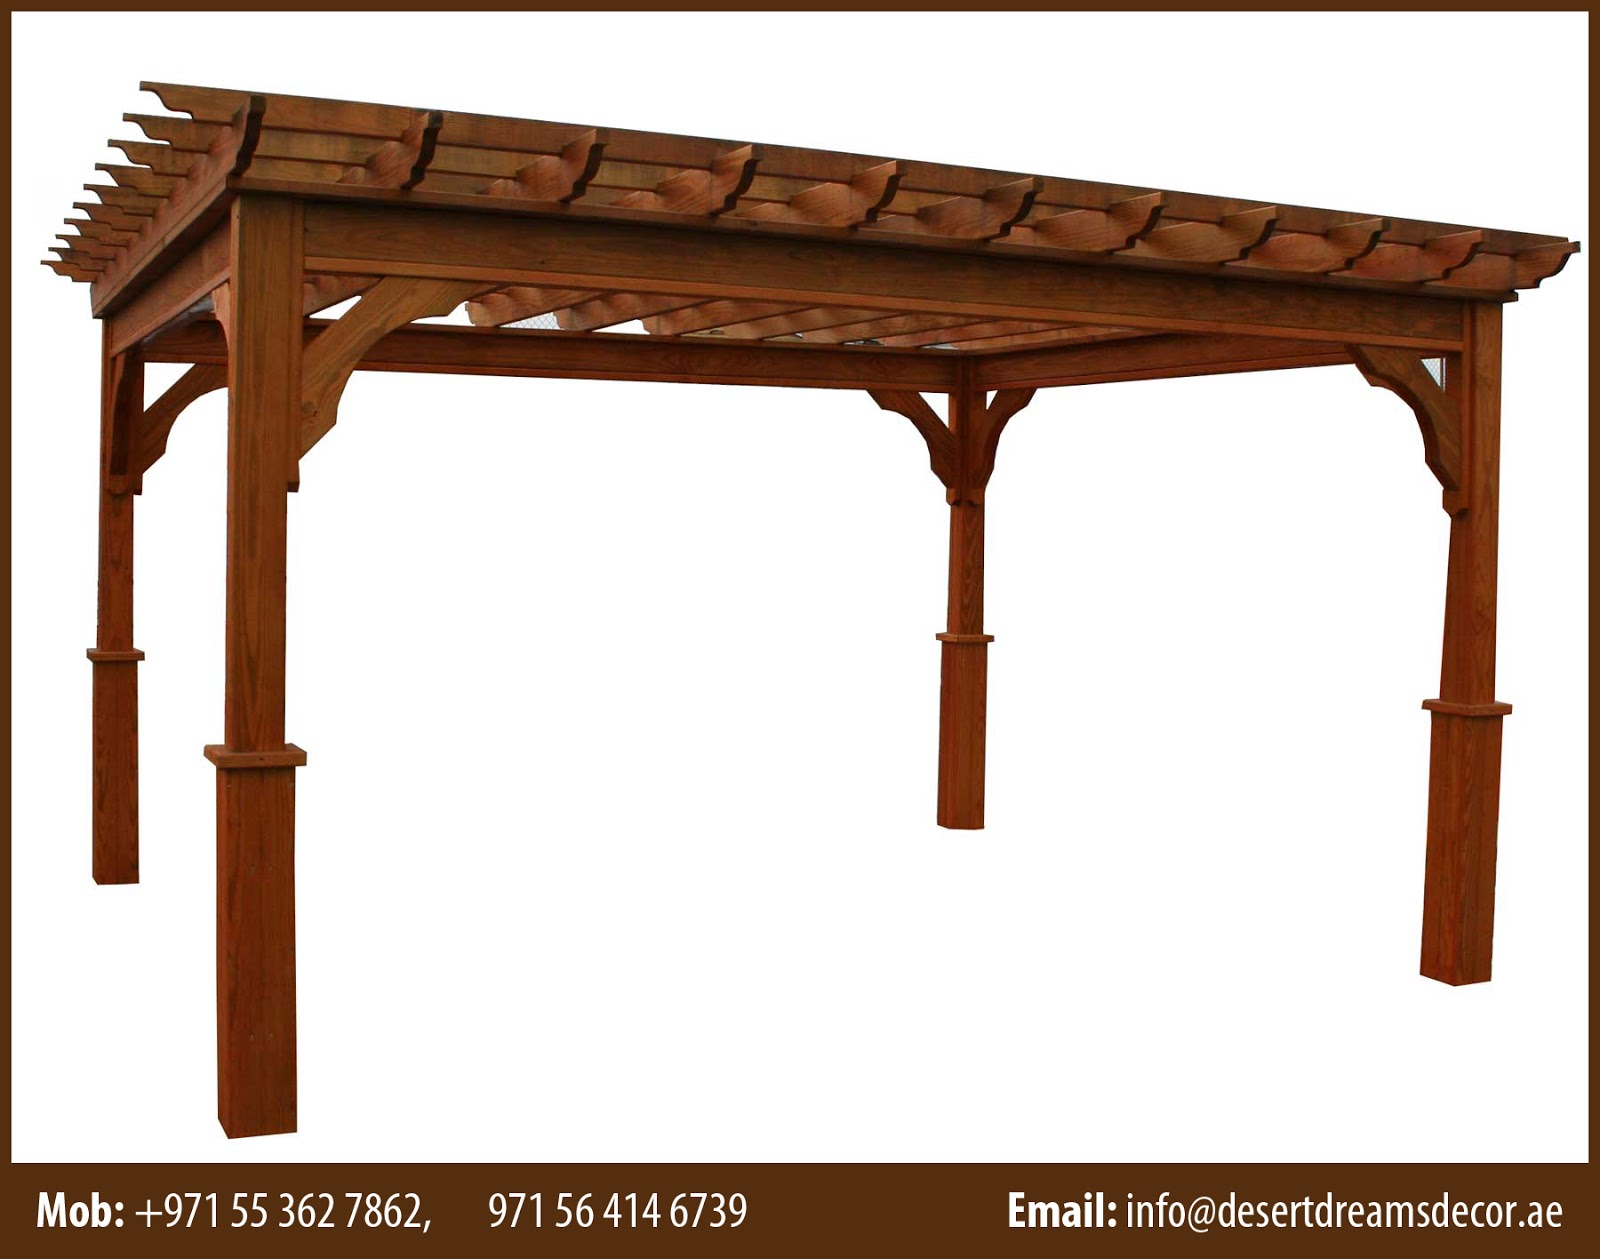 manufacturer and install wooden pergola in uae 2016 garden pergola in uae desert dreams decor garden wooden pergola in uae 6